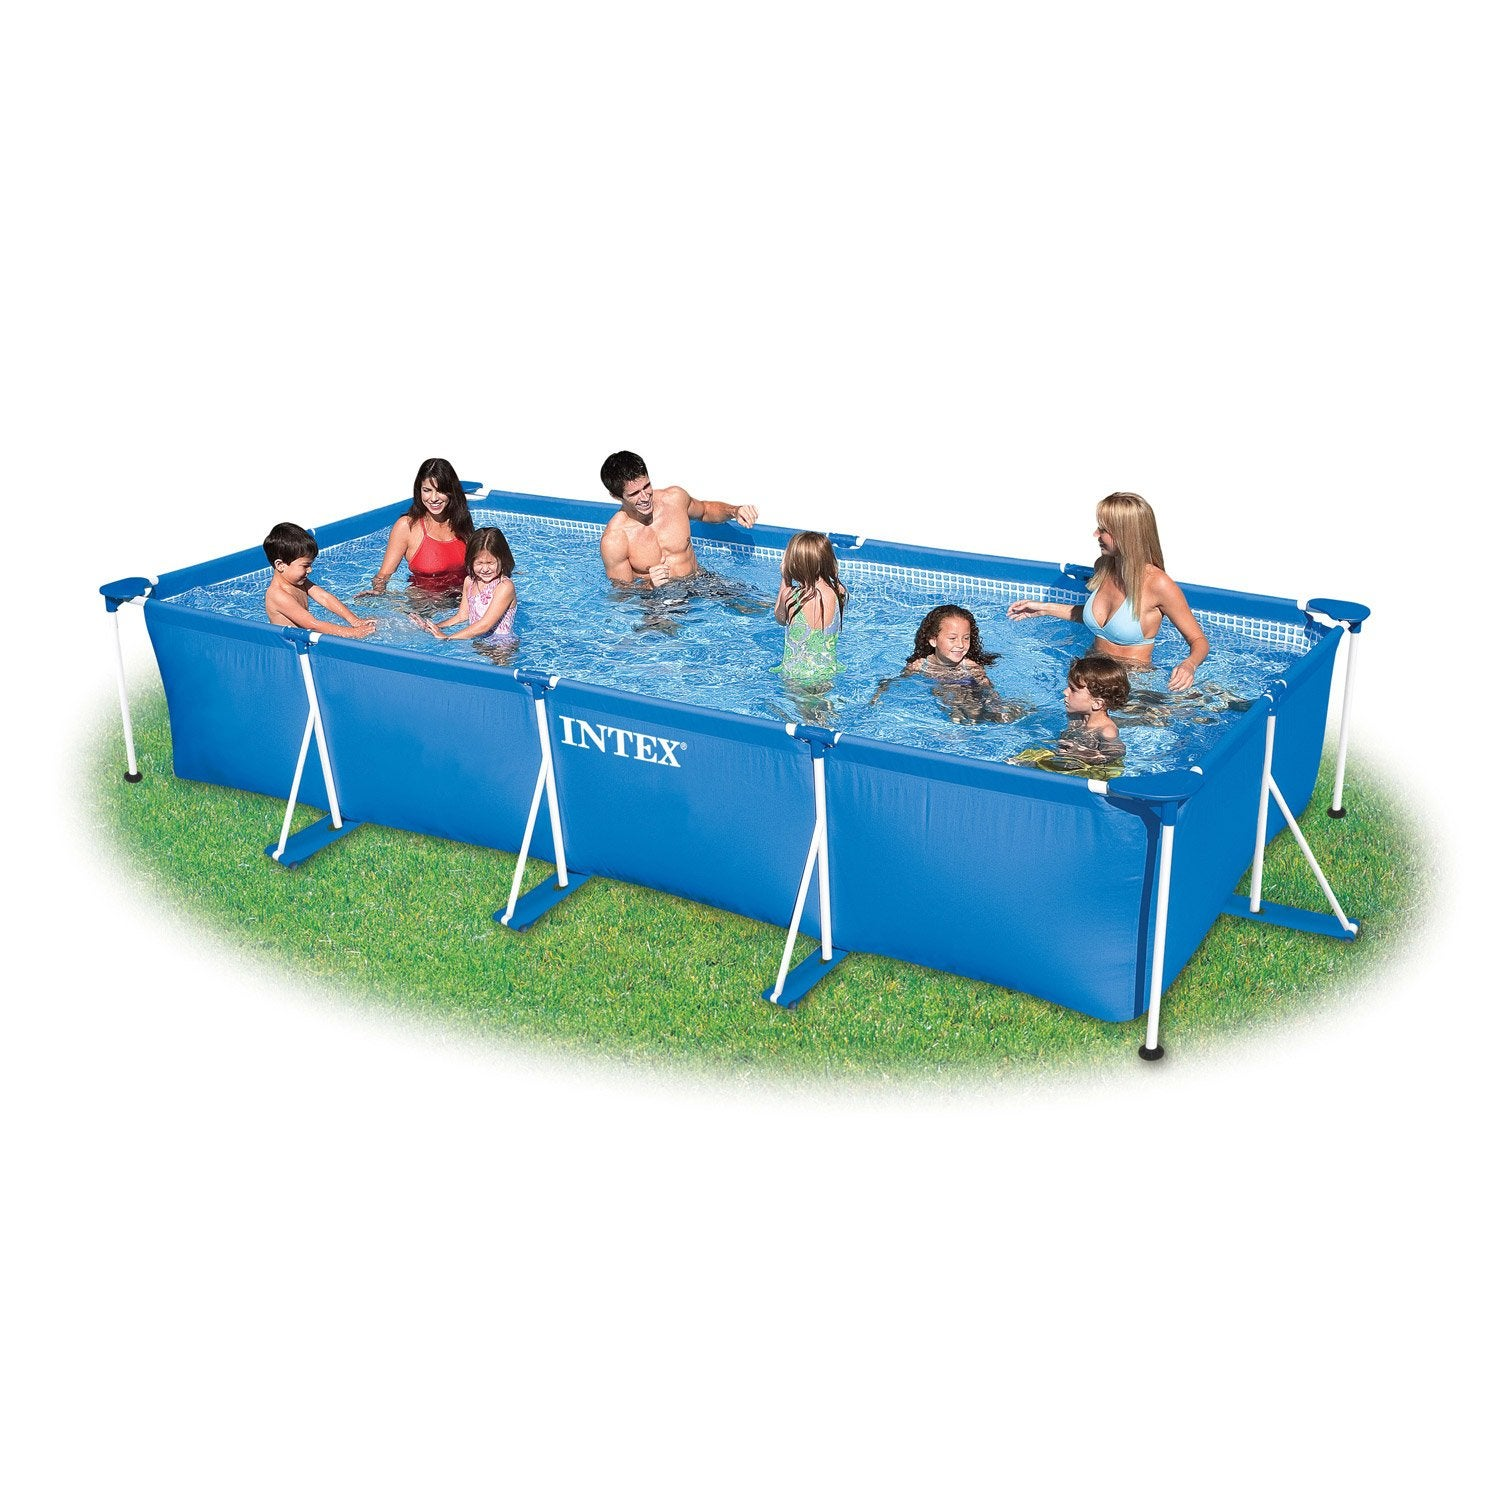 Piscine hors sol autoportante tubulaire intex l x l for Piscine hors sol amenagee